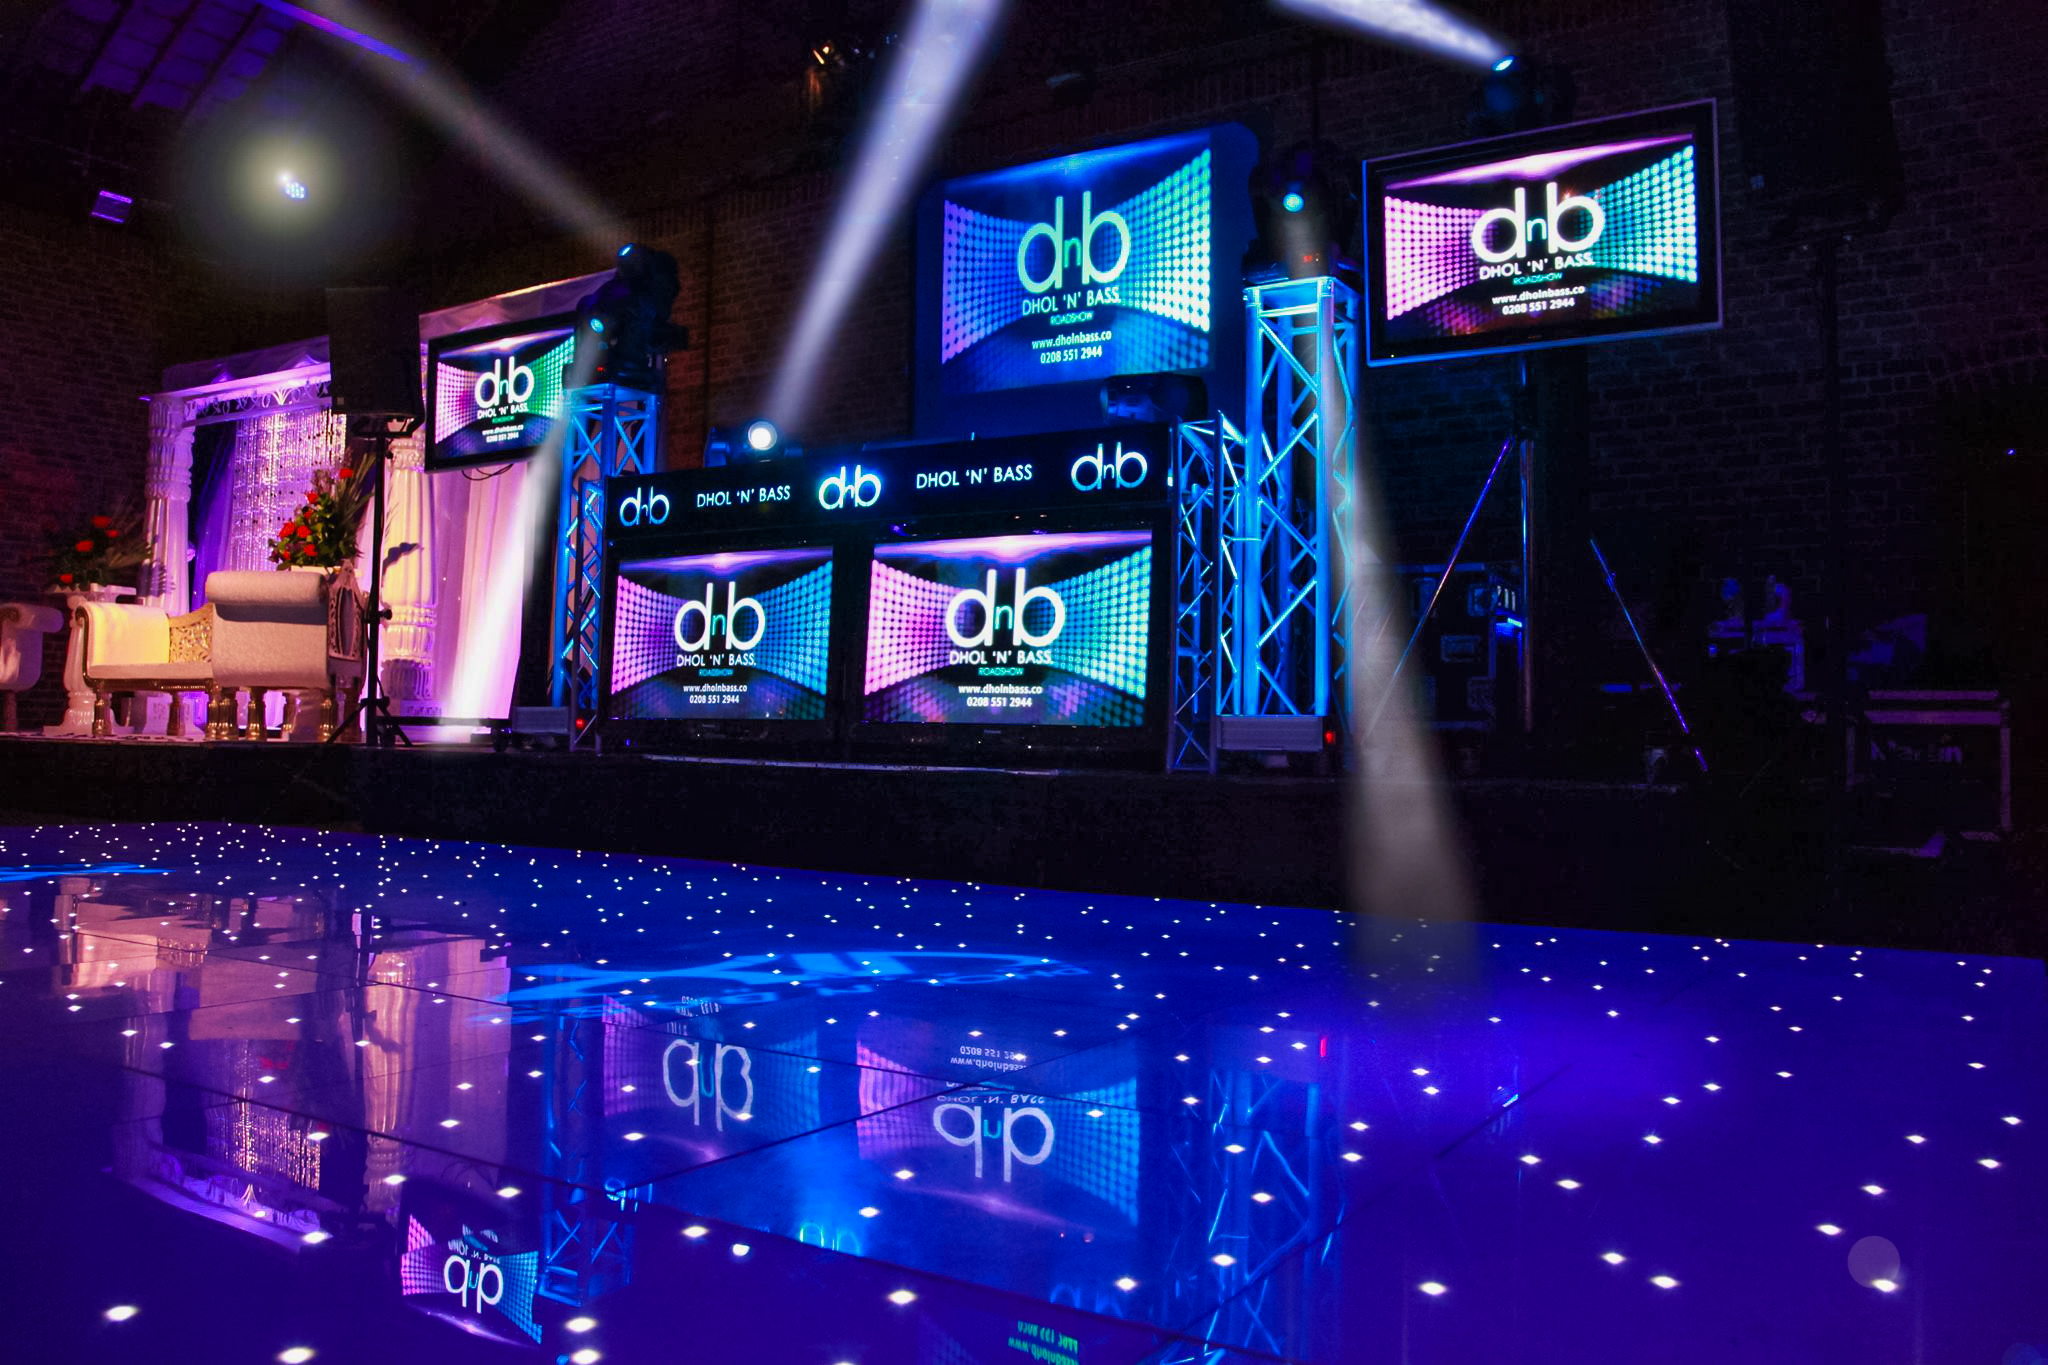 Premier AVL – The UK's Premier Audio Visual Hire